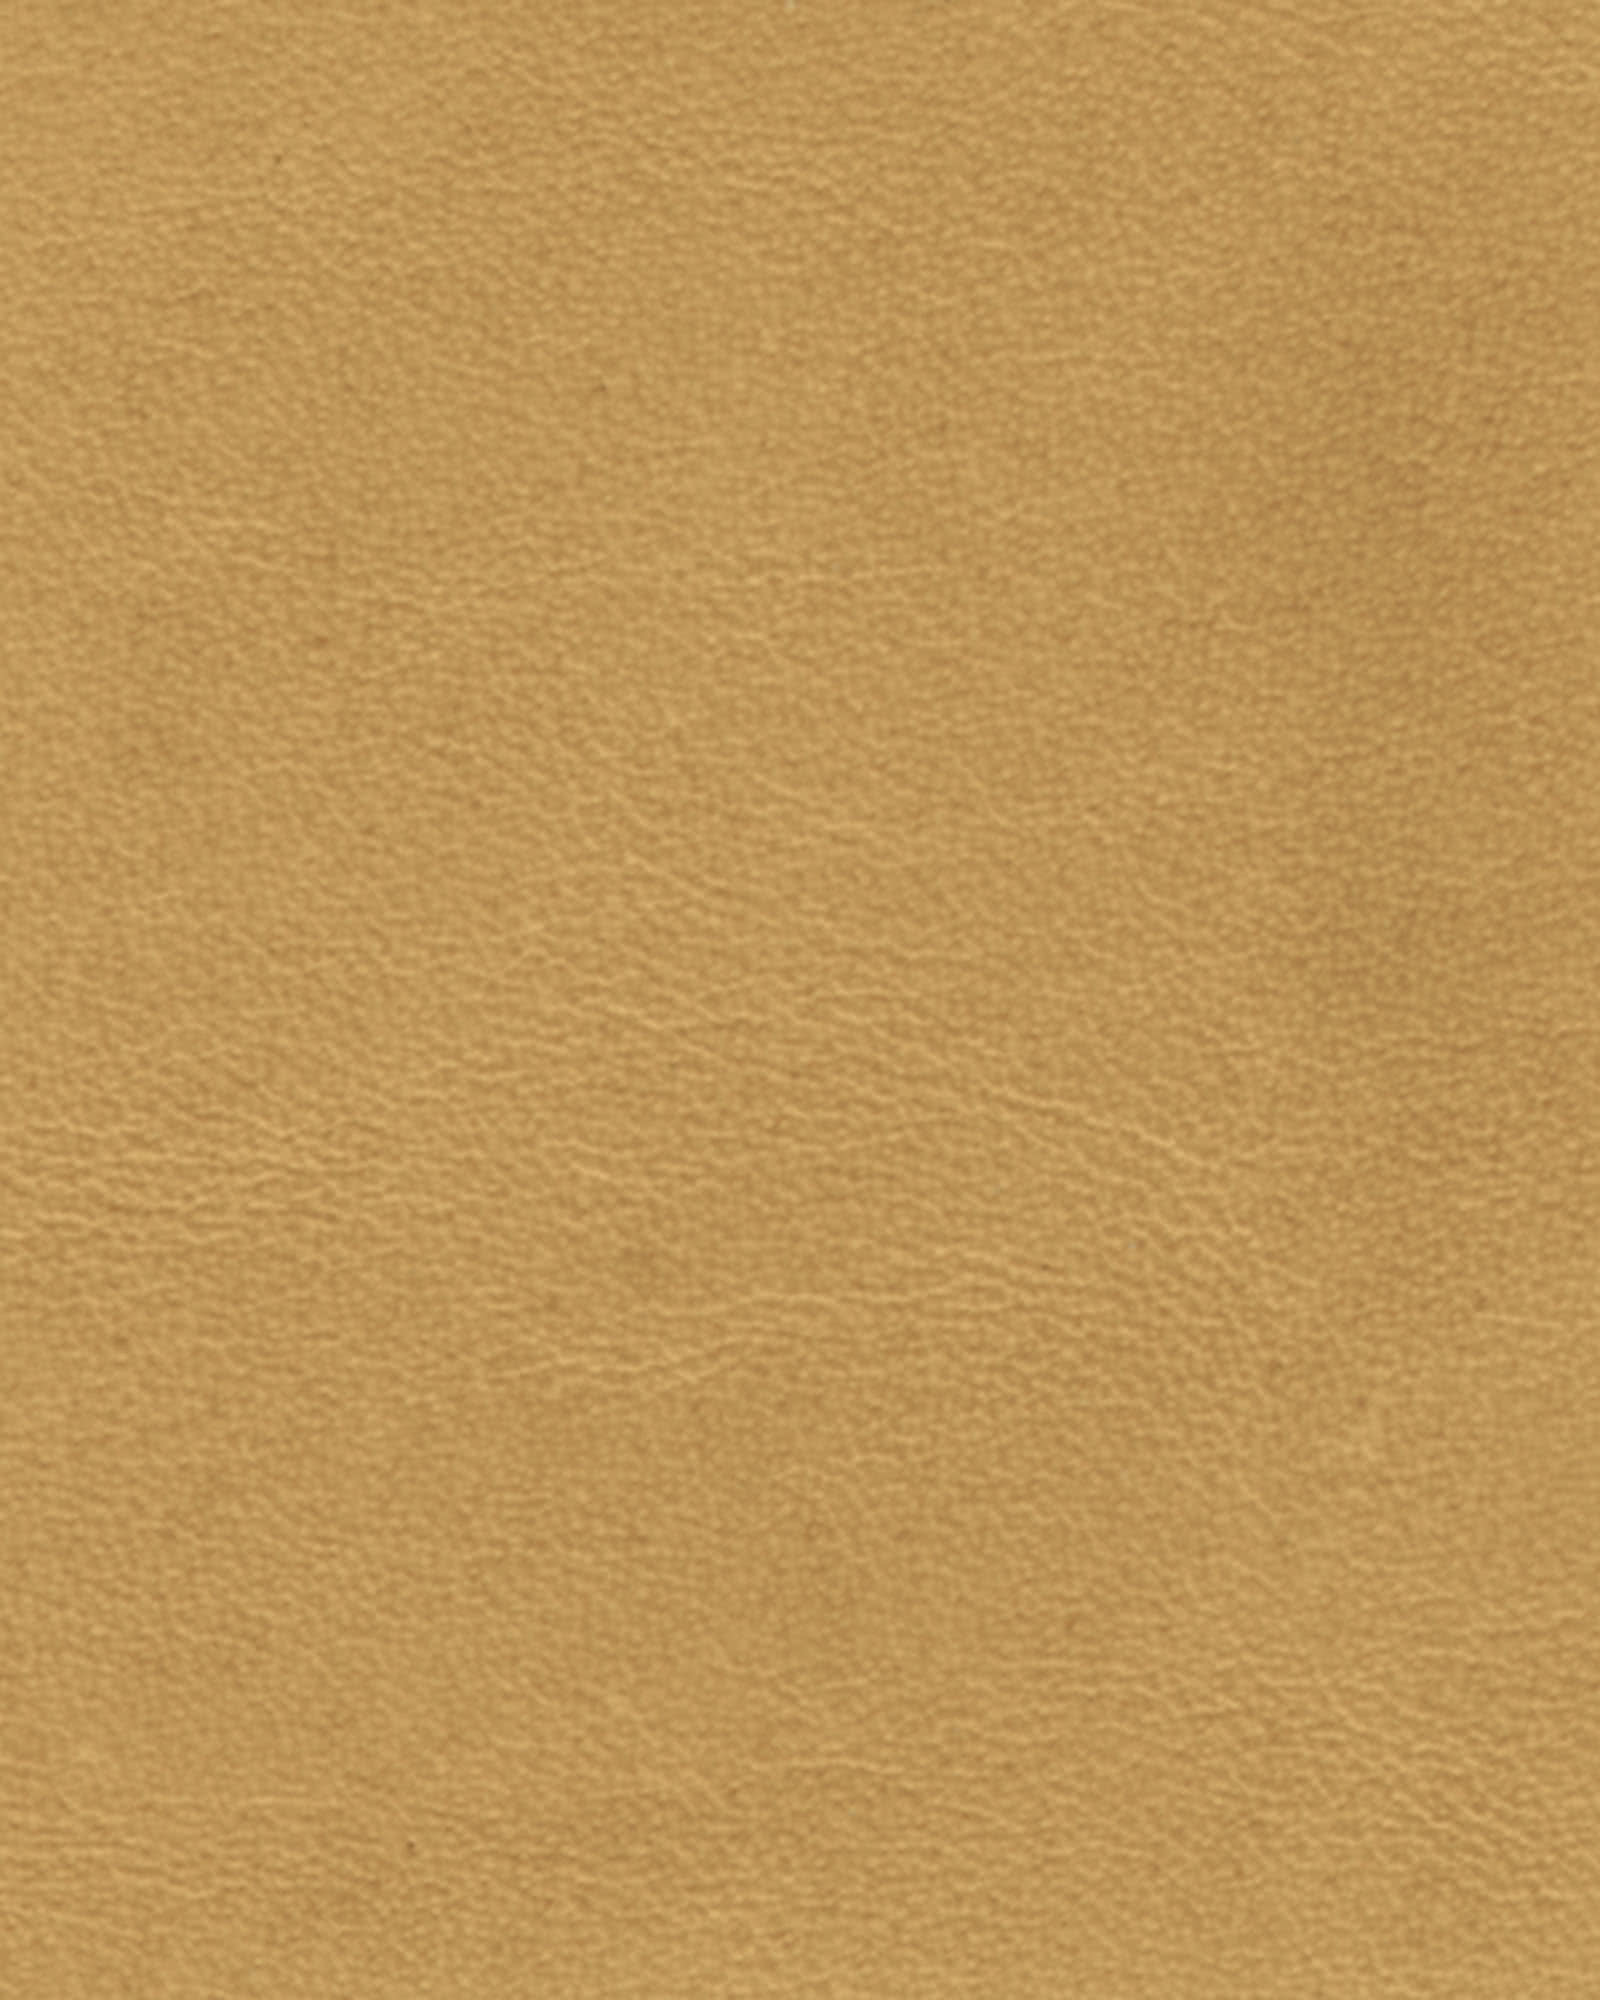 Distressed Leather - Taupe